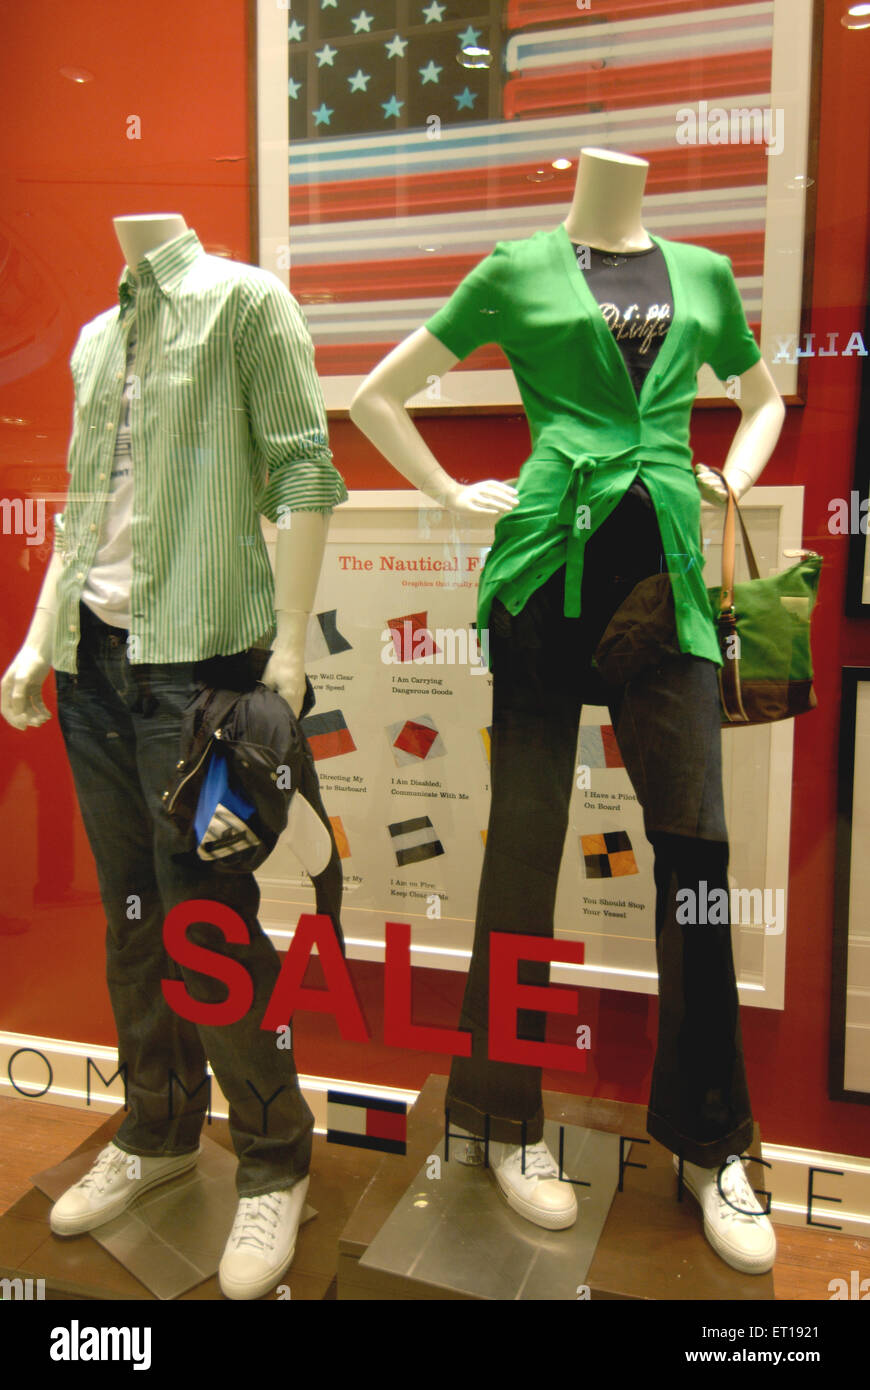 Mannequins in colourful dress in showcase ; Singapore - Stock Image